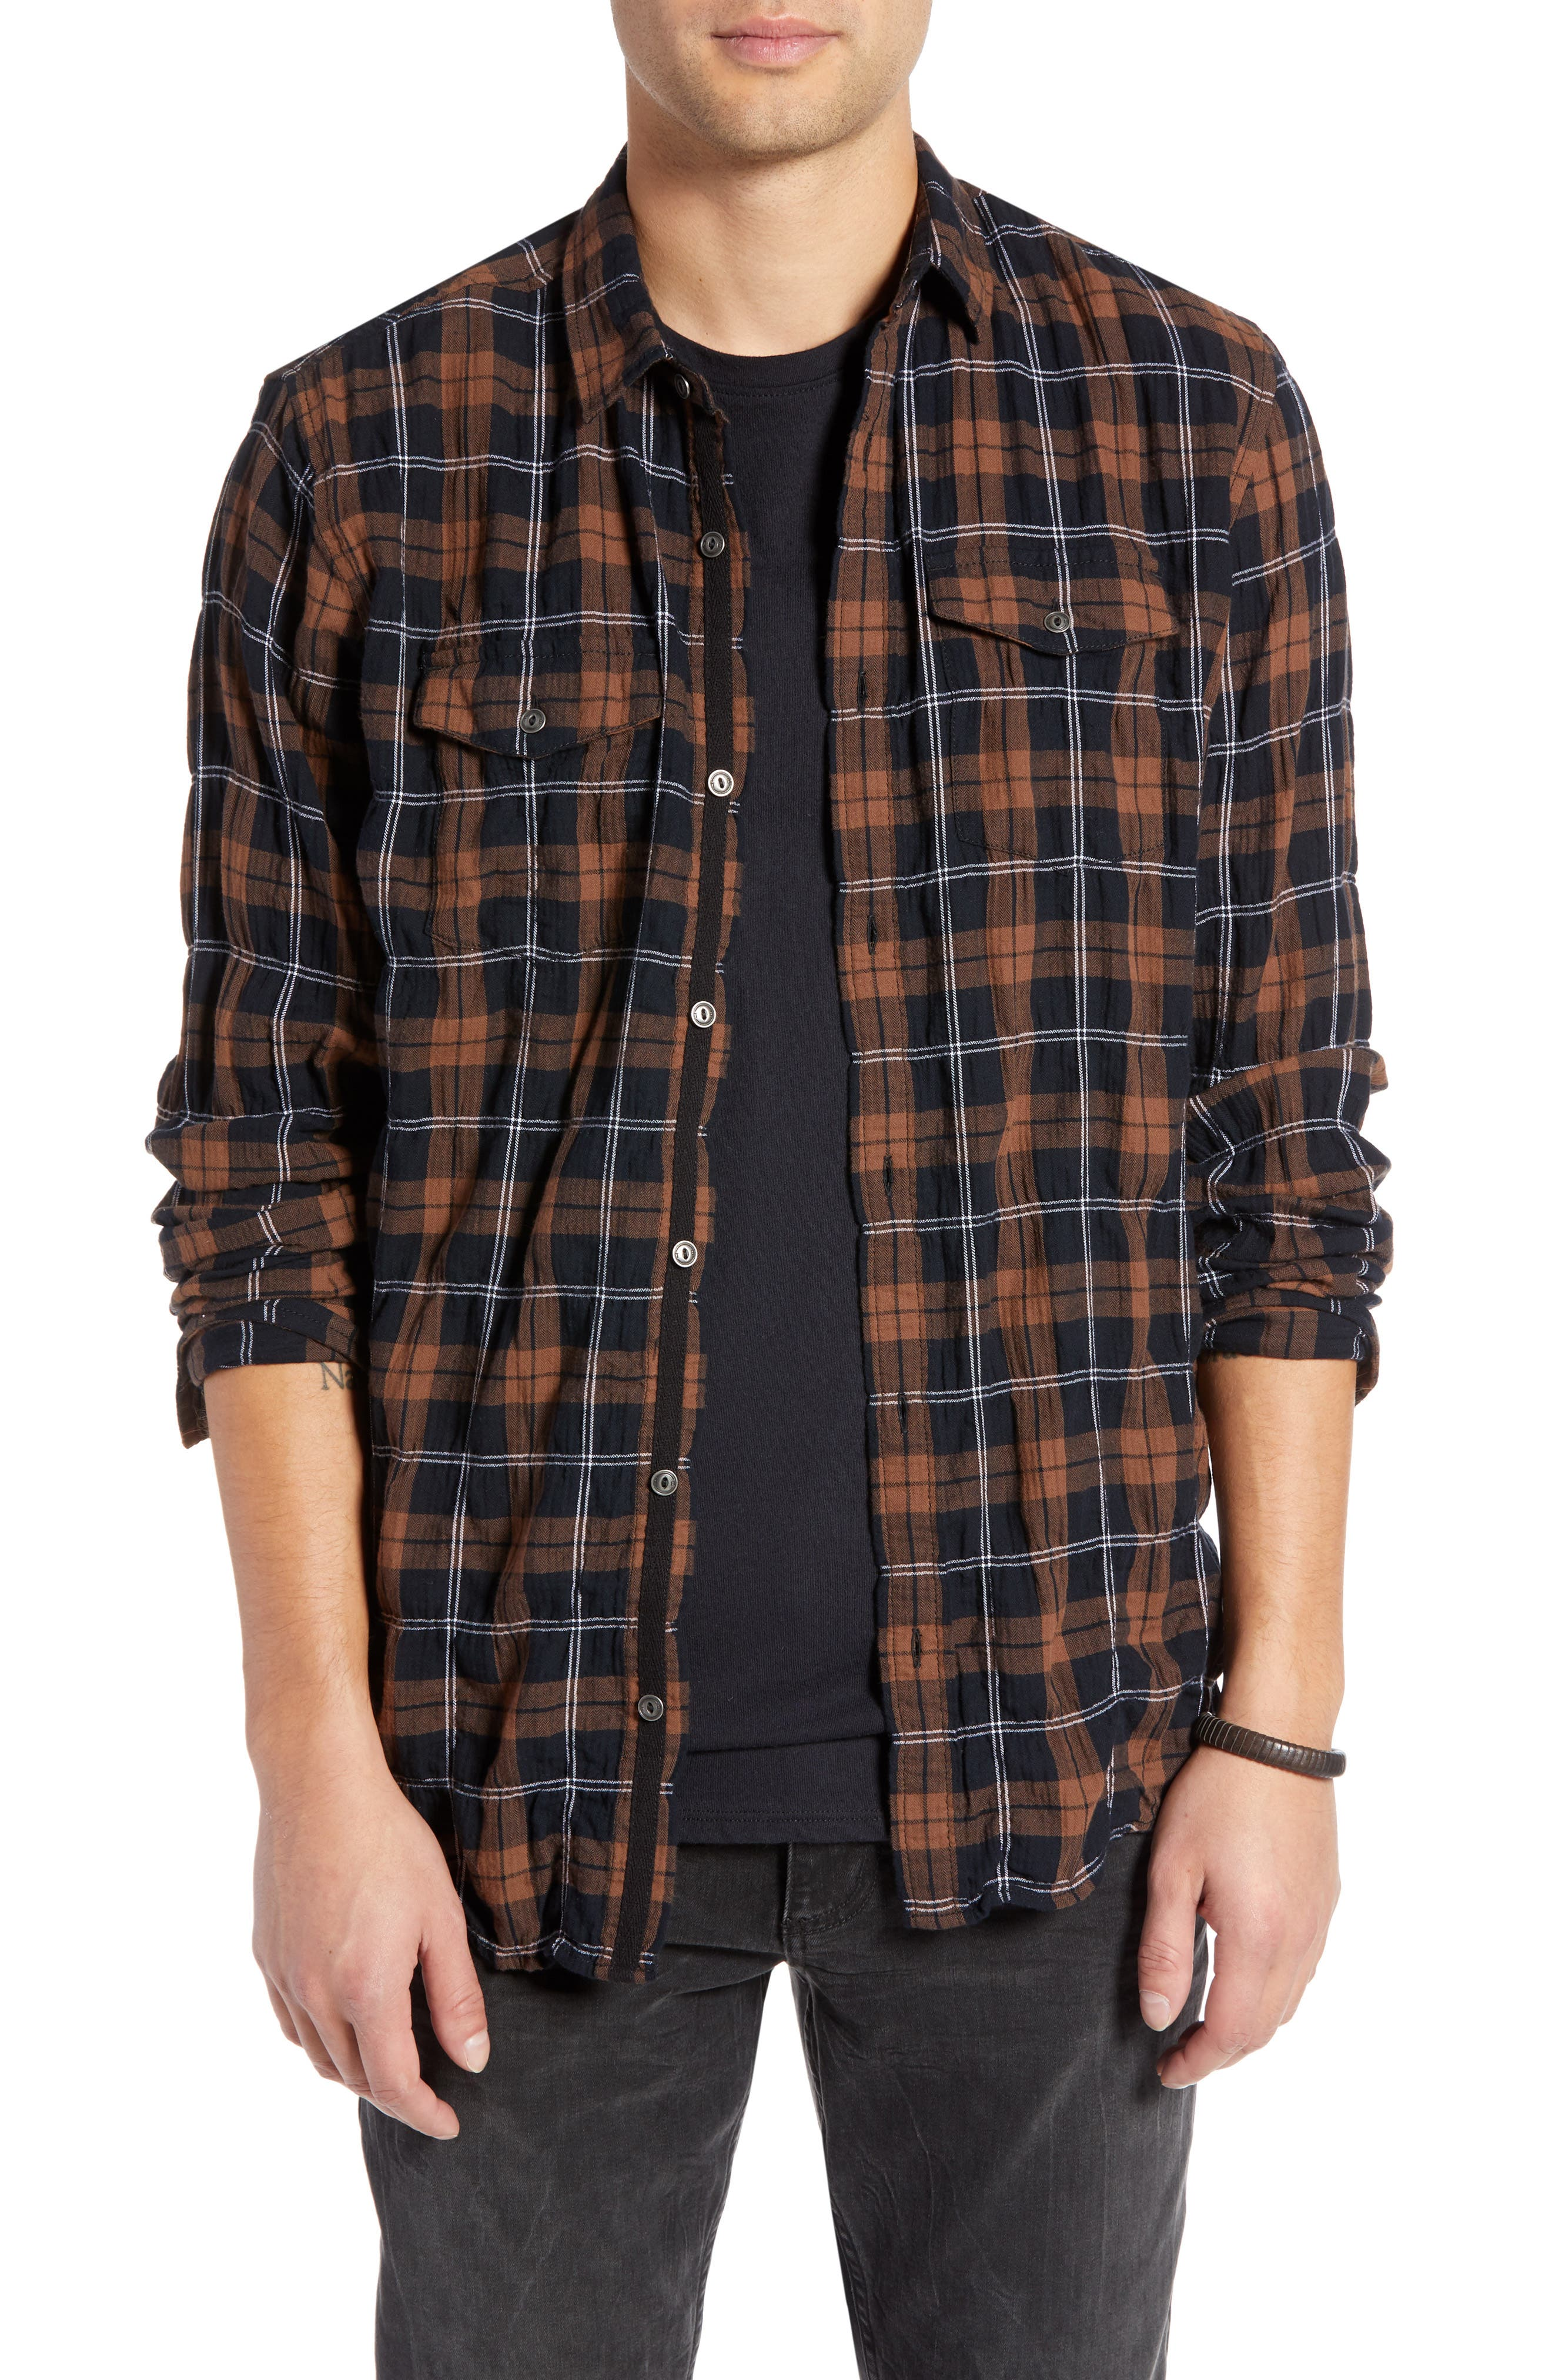 Regular Fit Plaid Sport Shirt,                             Main thumbnail 1, color,                             BLACK BROWN SMITH PLAID